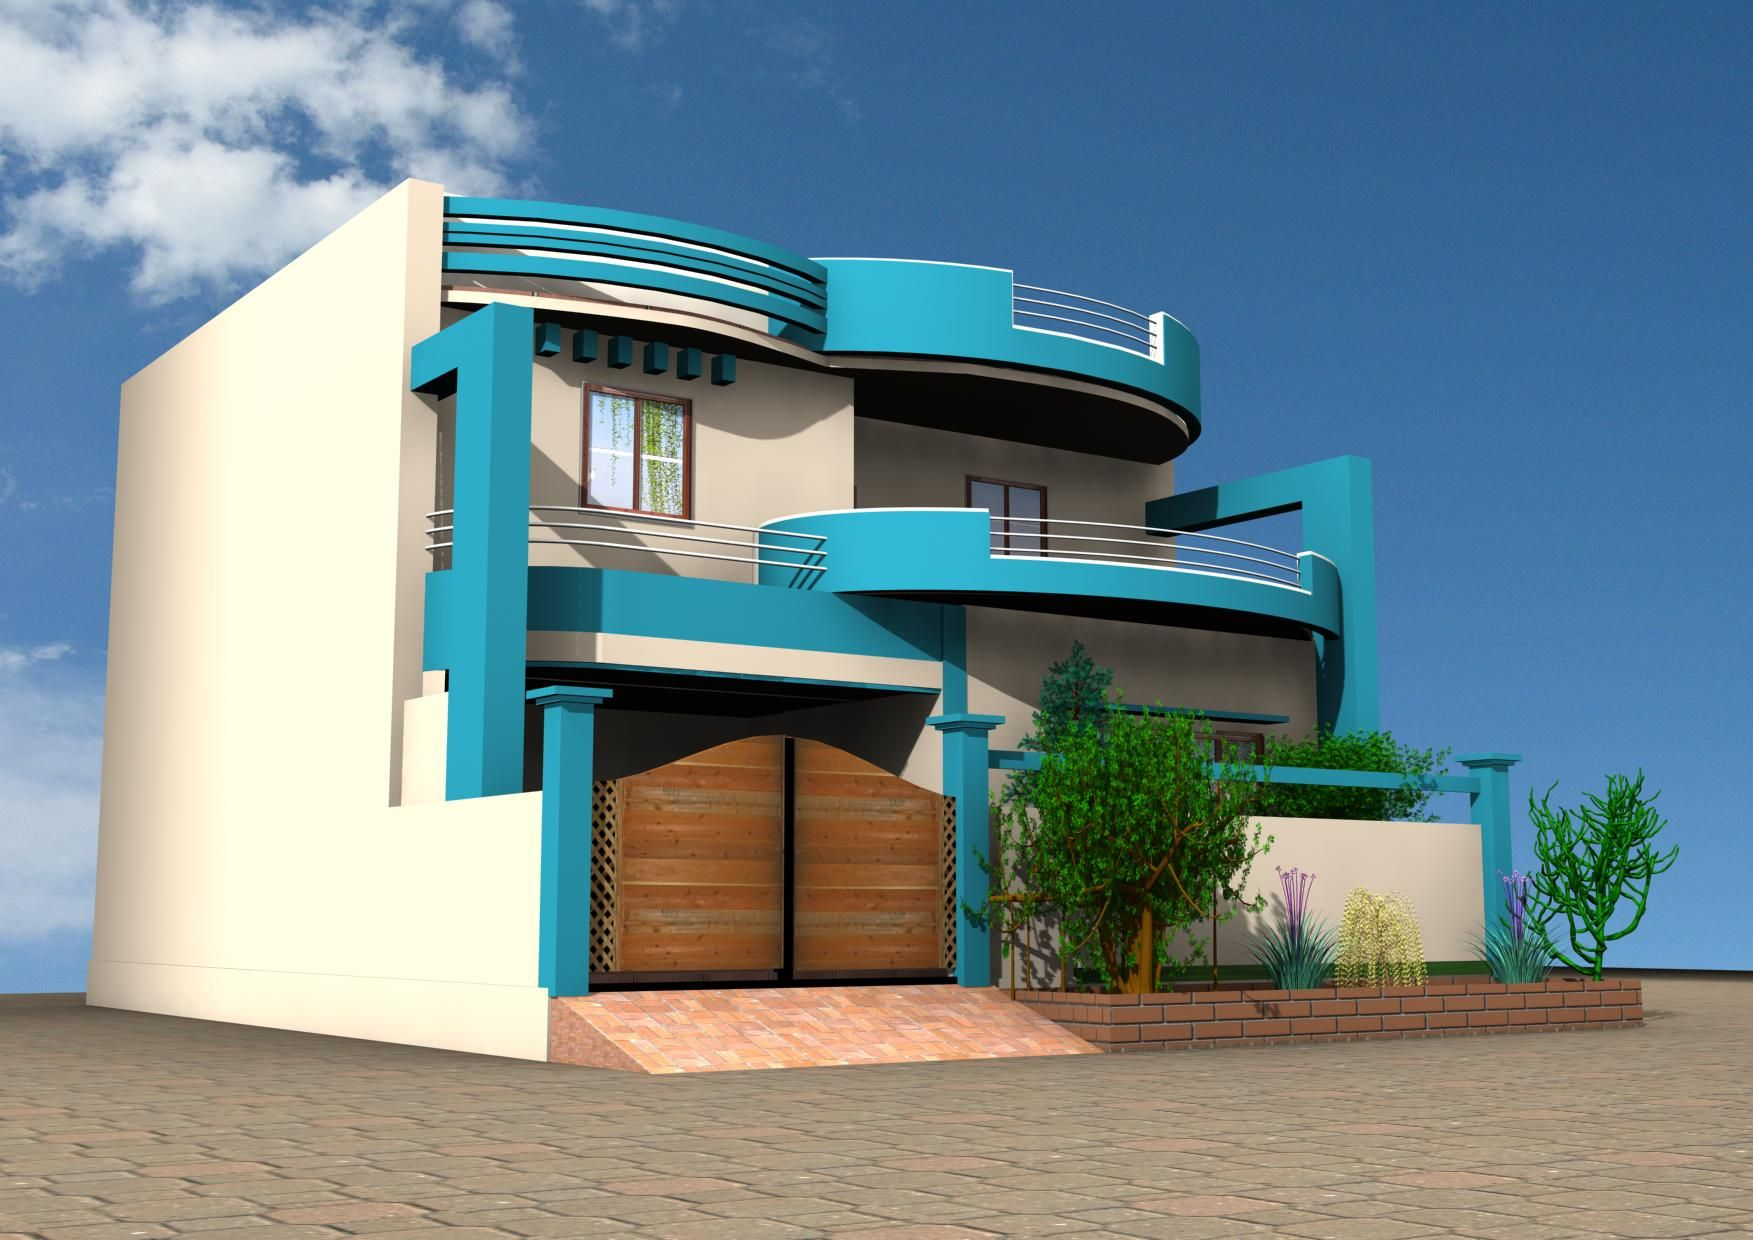 3d home design images hd 1080p Simple software for home design